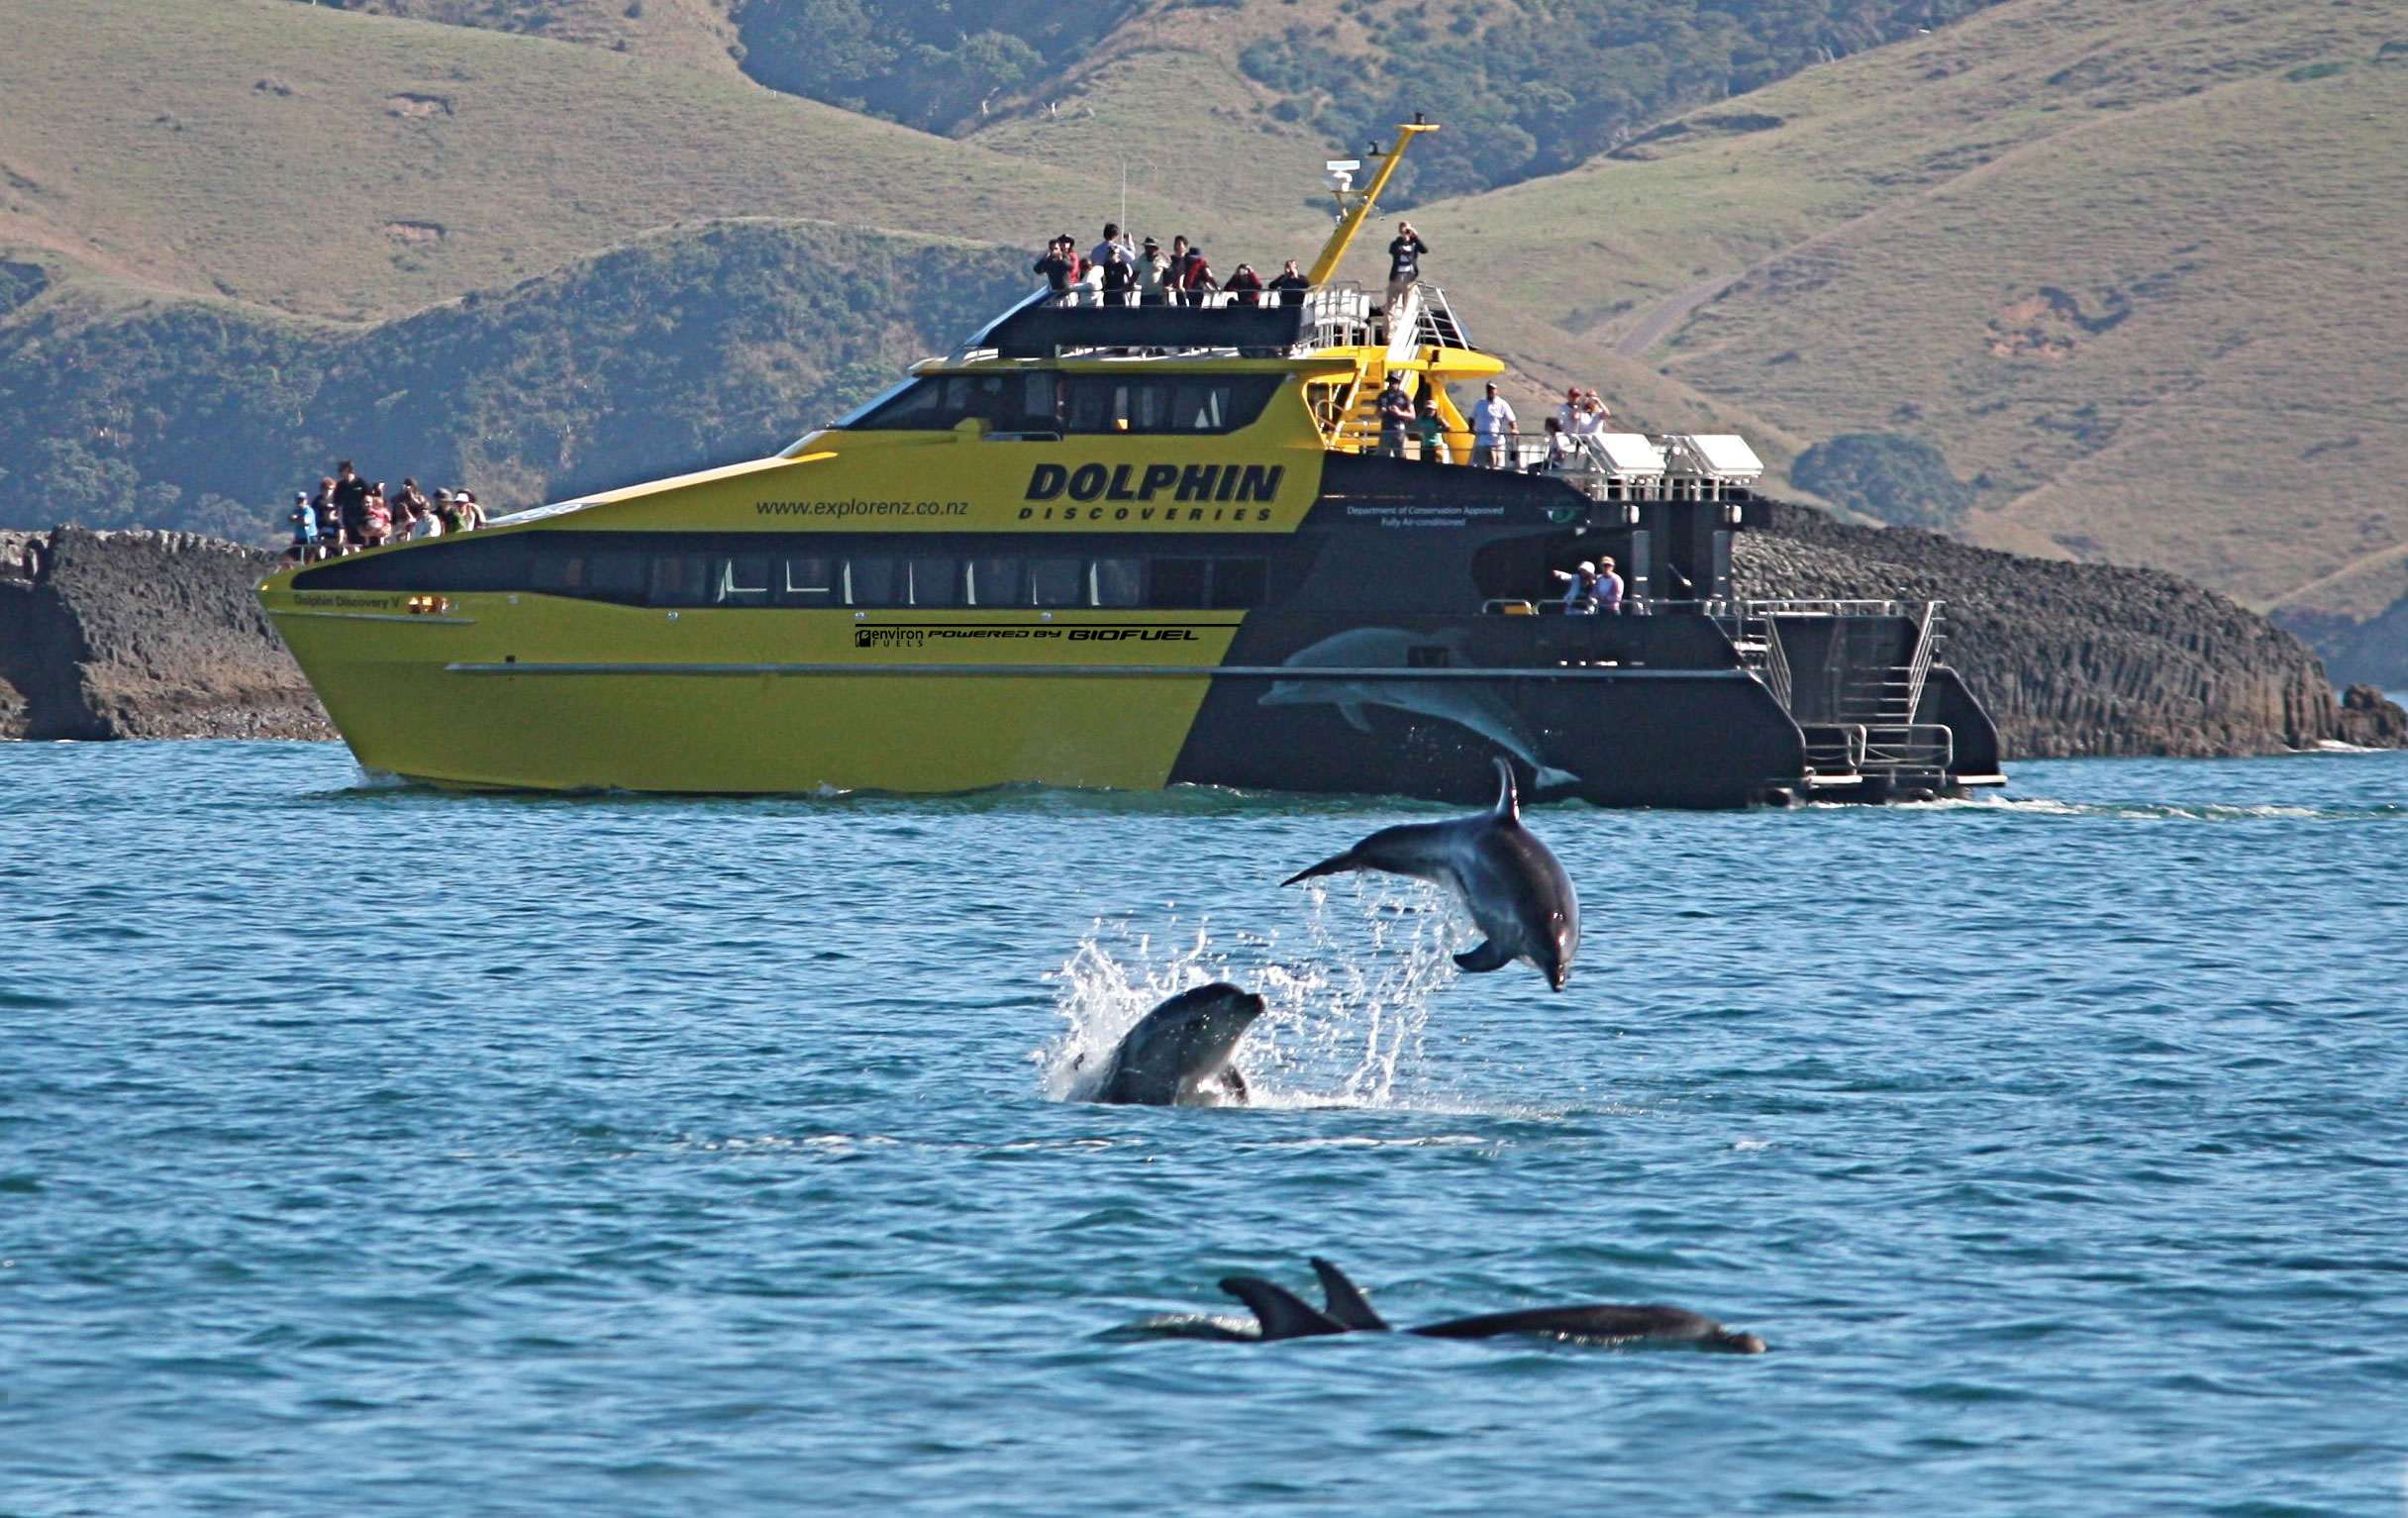 Explore NZ Dolphins - Study Rewards North Island